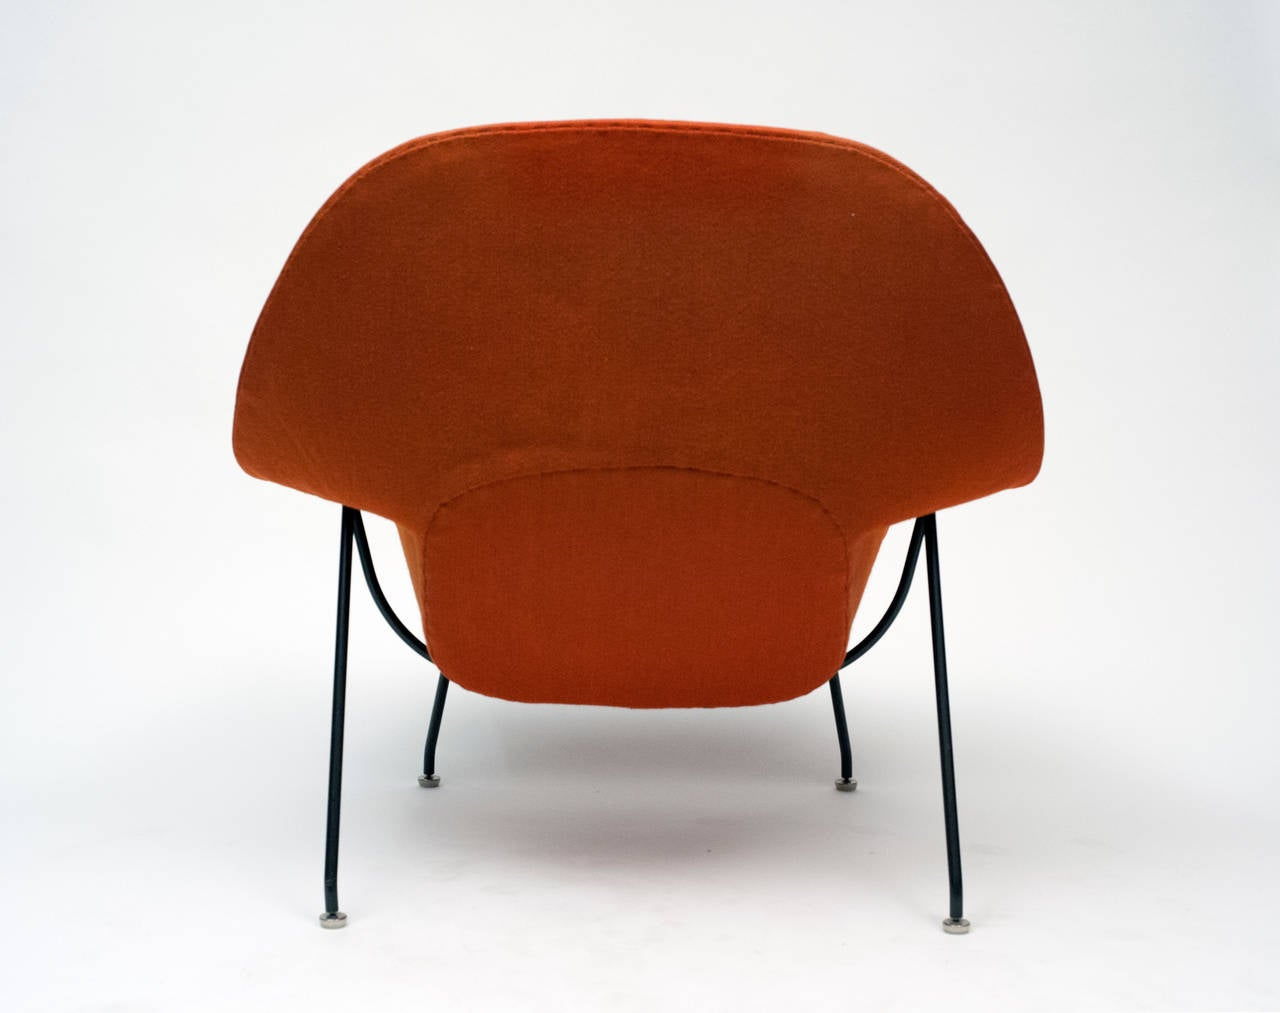 Knoll womb chair - Early Womb Chair With Black Frame And Ottoman By Eero Saarinen For Knoll 1950s 3